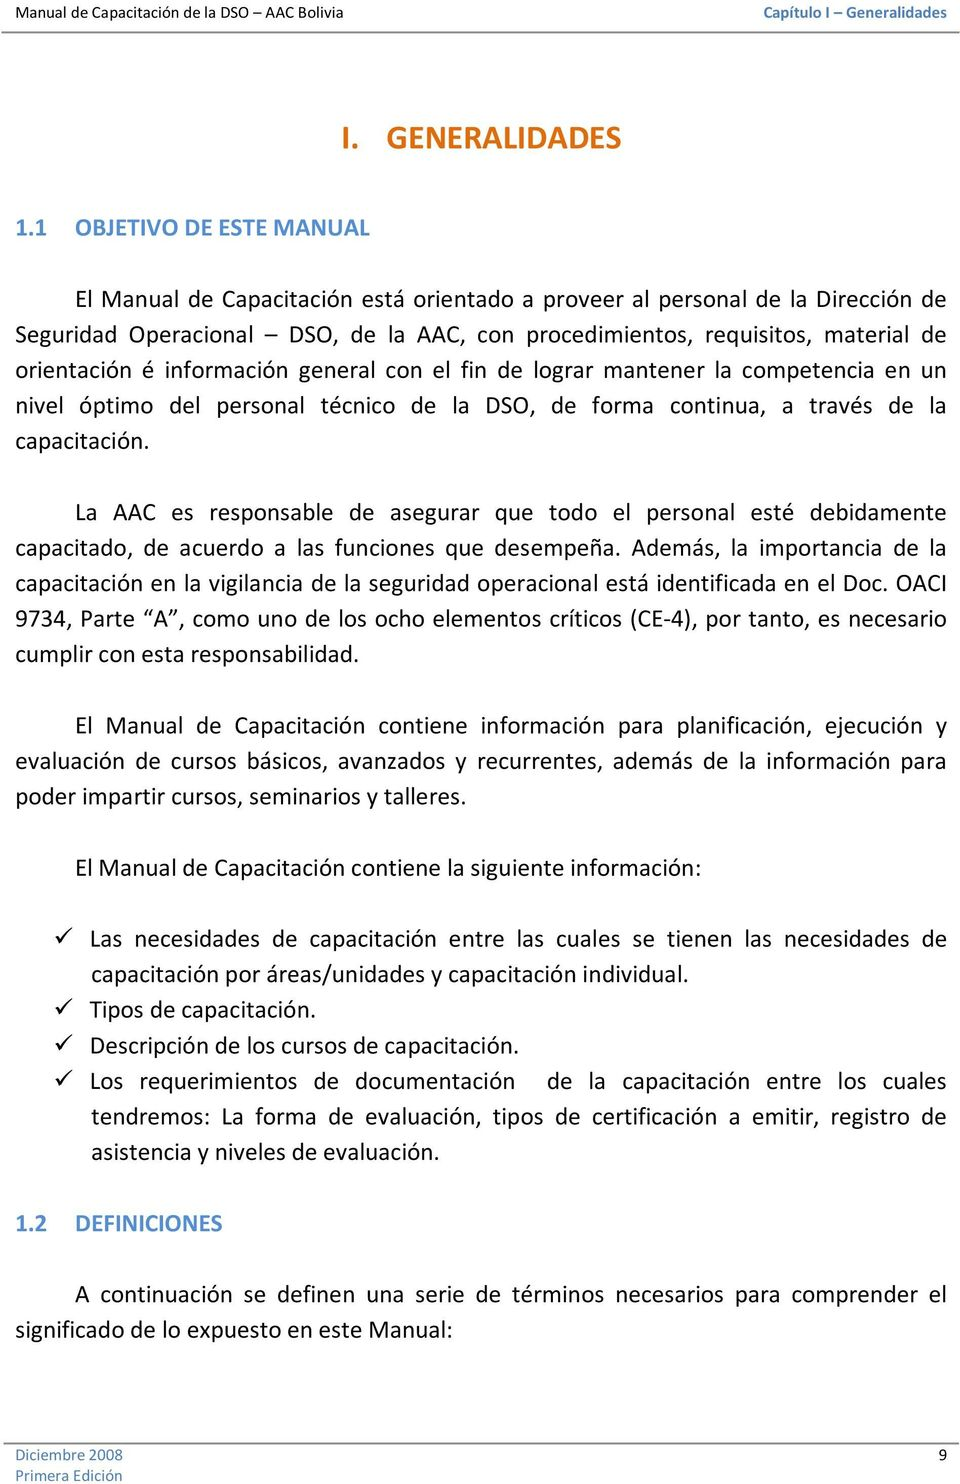 Manual de capacitaci n pdf for Capacitacion para restaurantes pdf